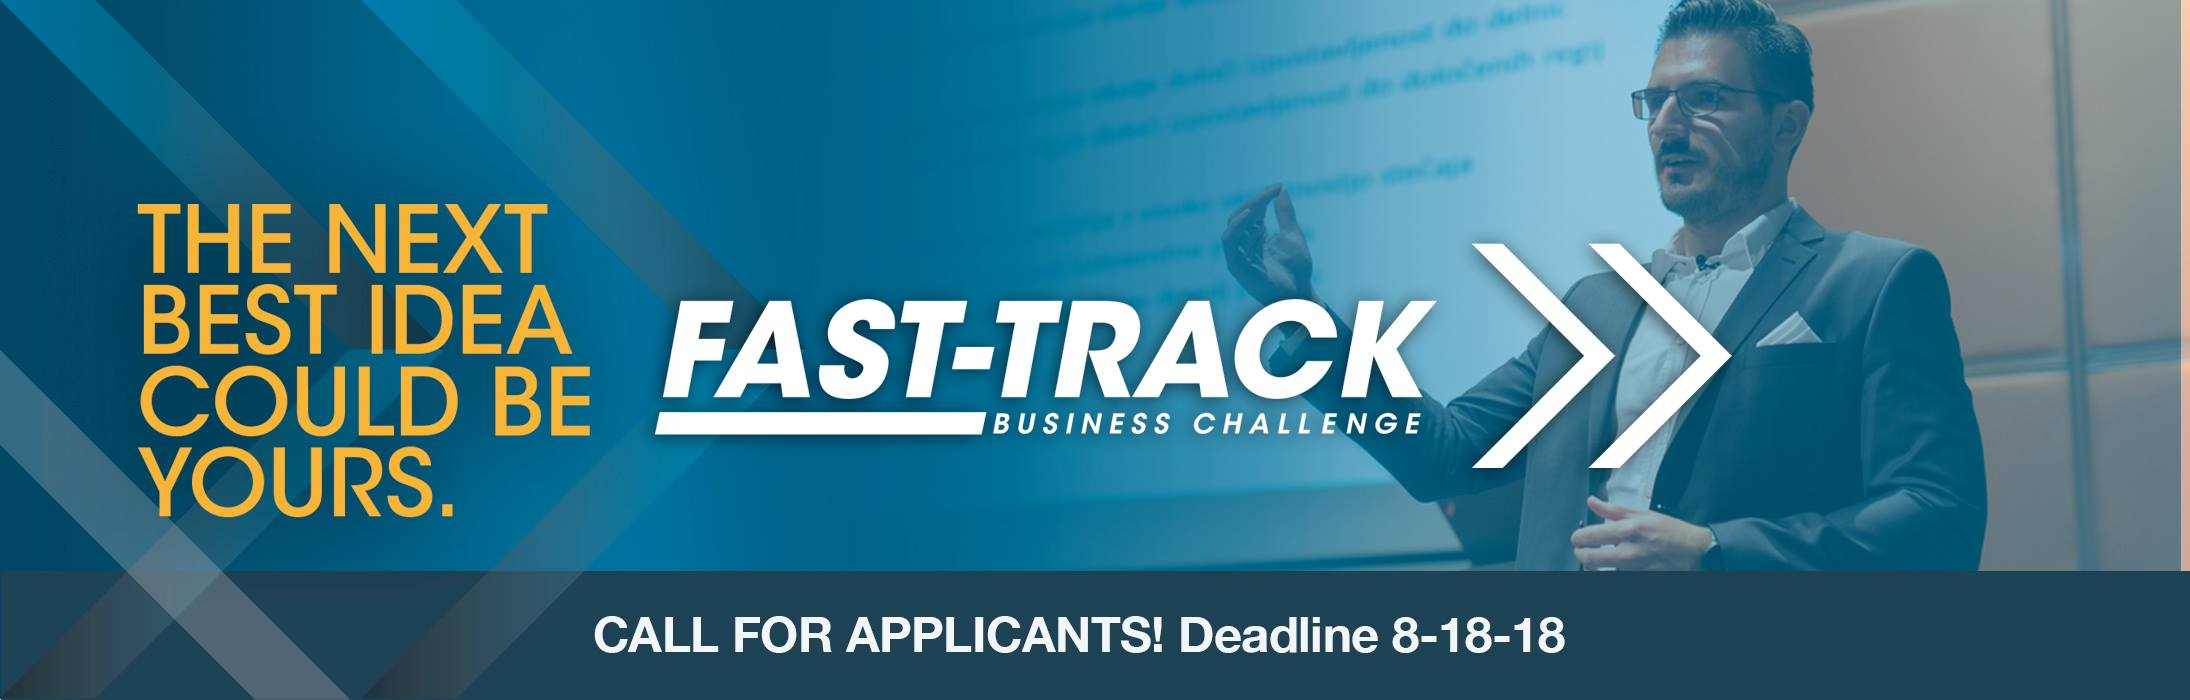 FSS Launches FAST-TRACK Challenge website and Facebook page